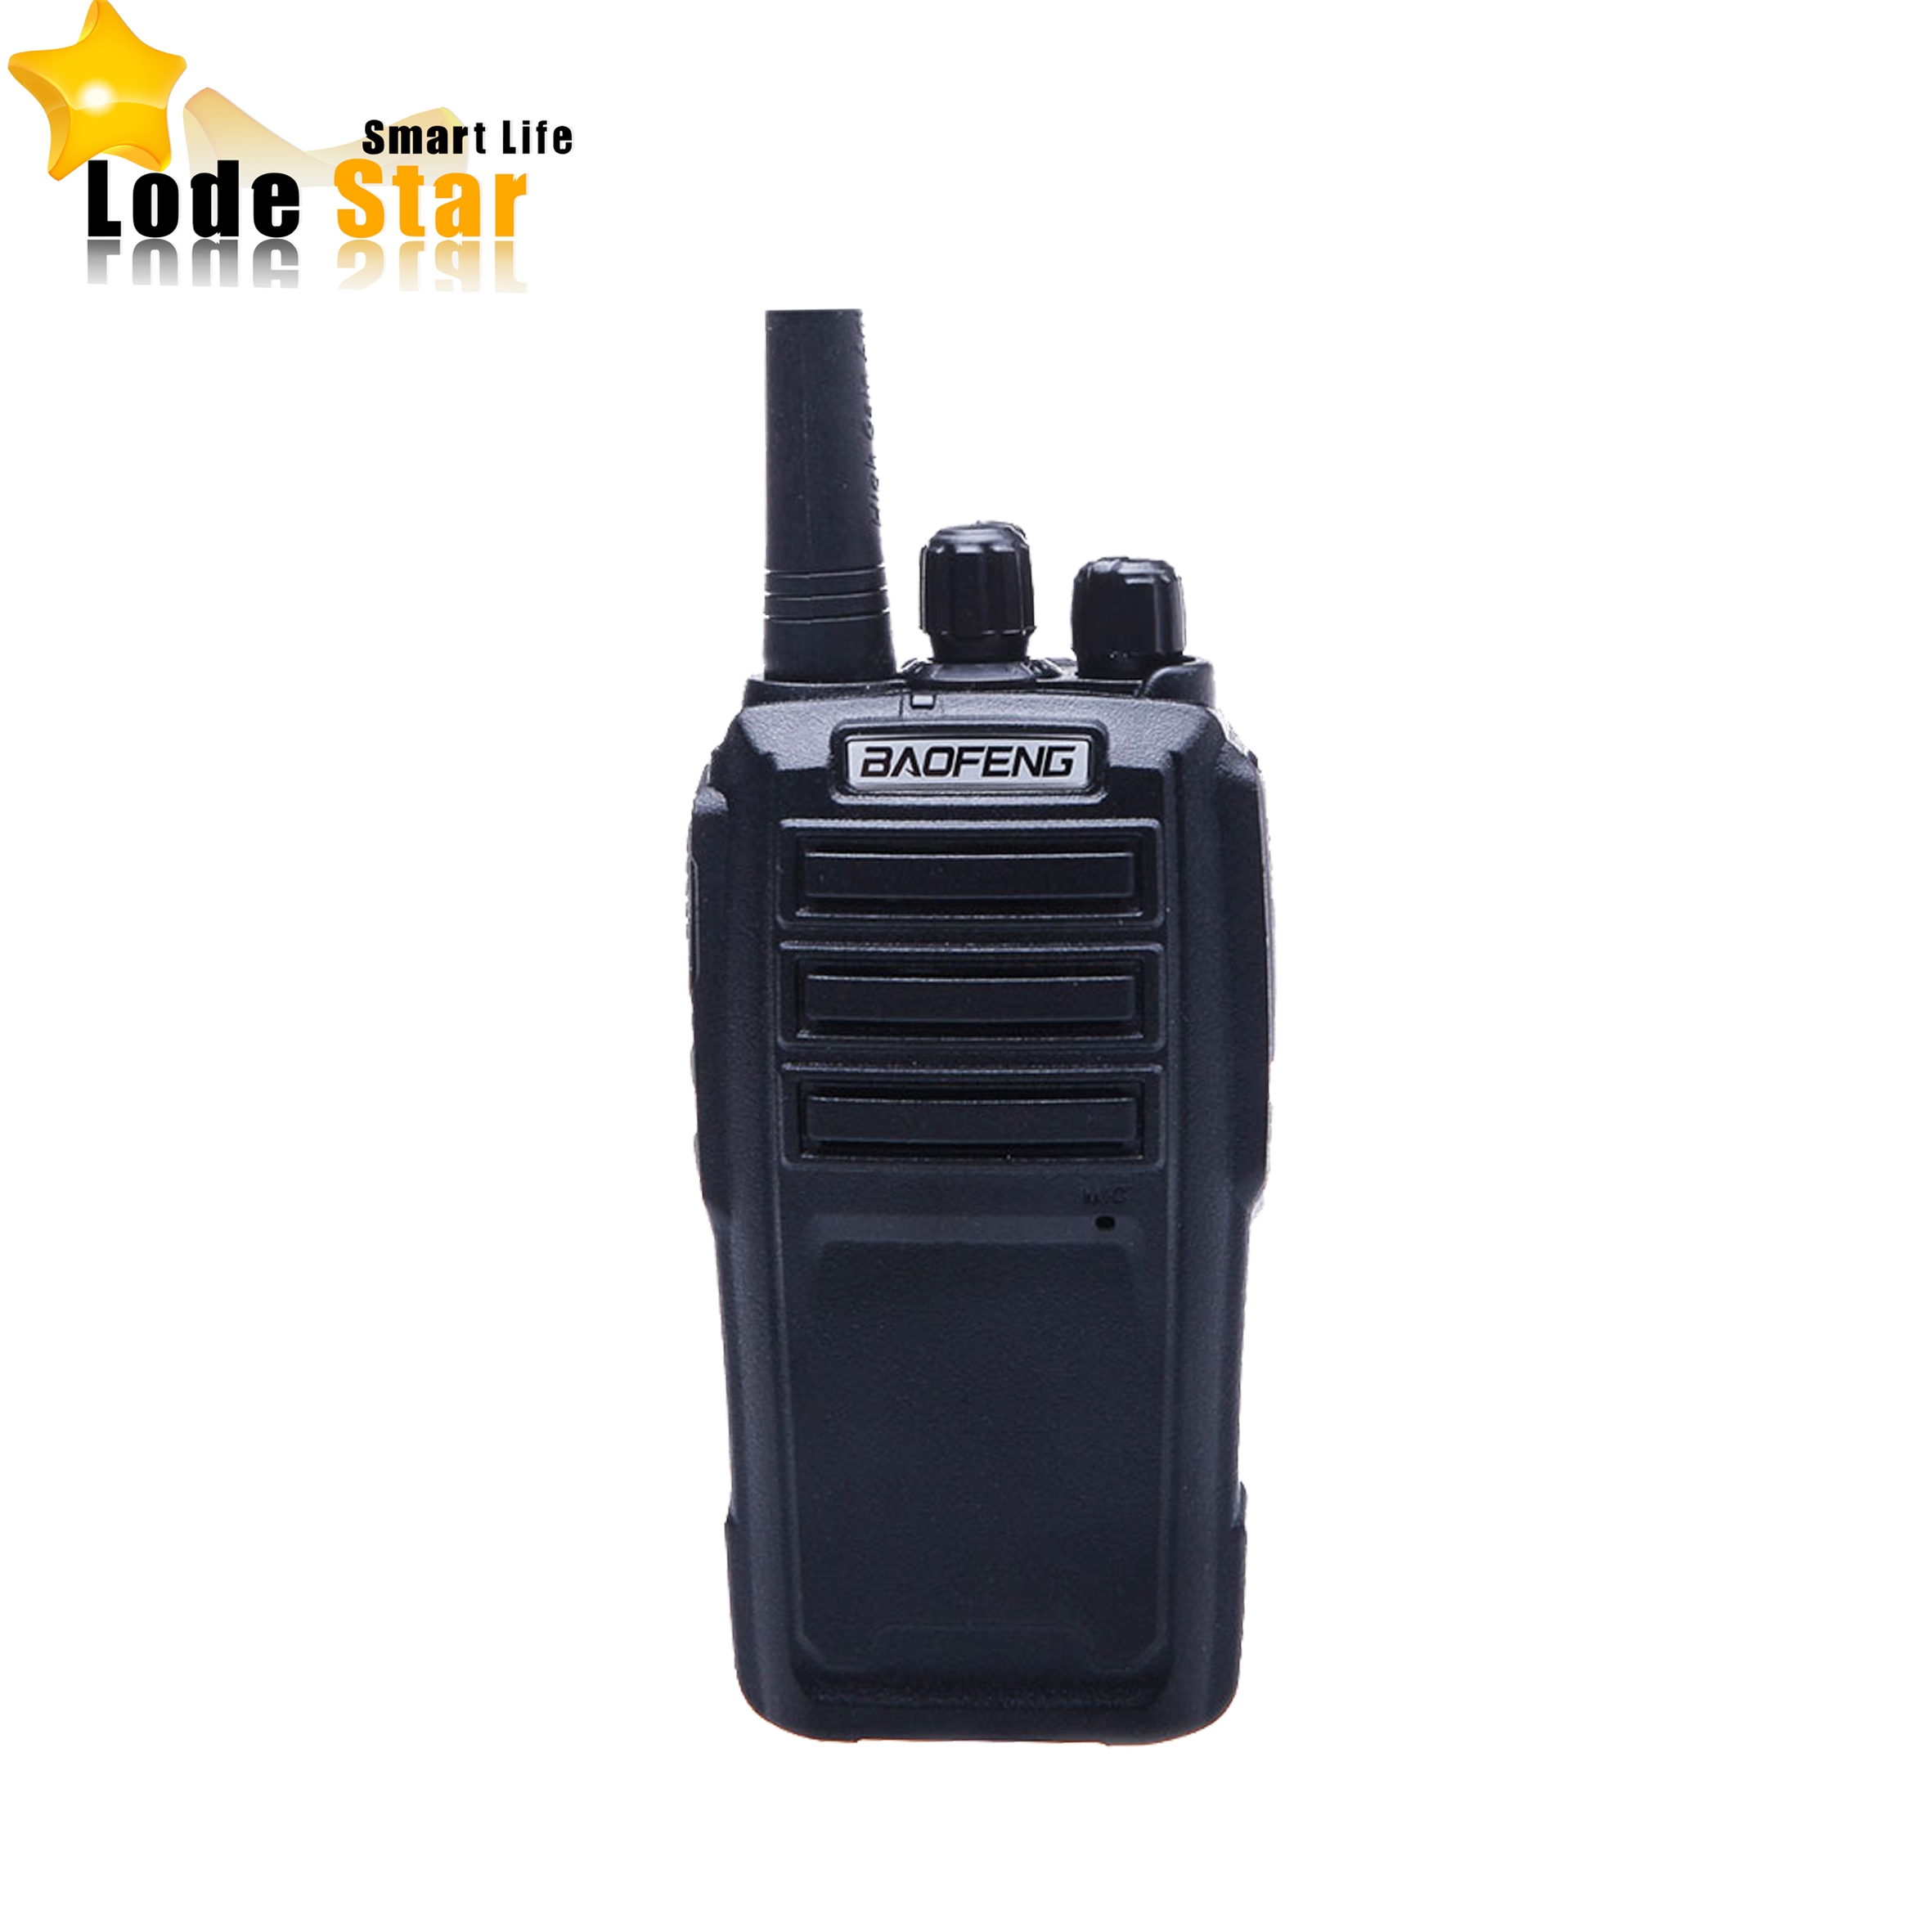 BaoFeng UV-6 Radio bidirectionnelle BF-UV6 Portable double bande VHF UHF 136-174/400-470 MHz 5 W VOX talkie-walkie professionnel Radio FM CB